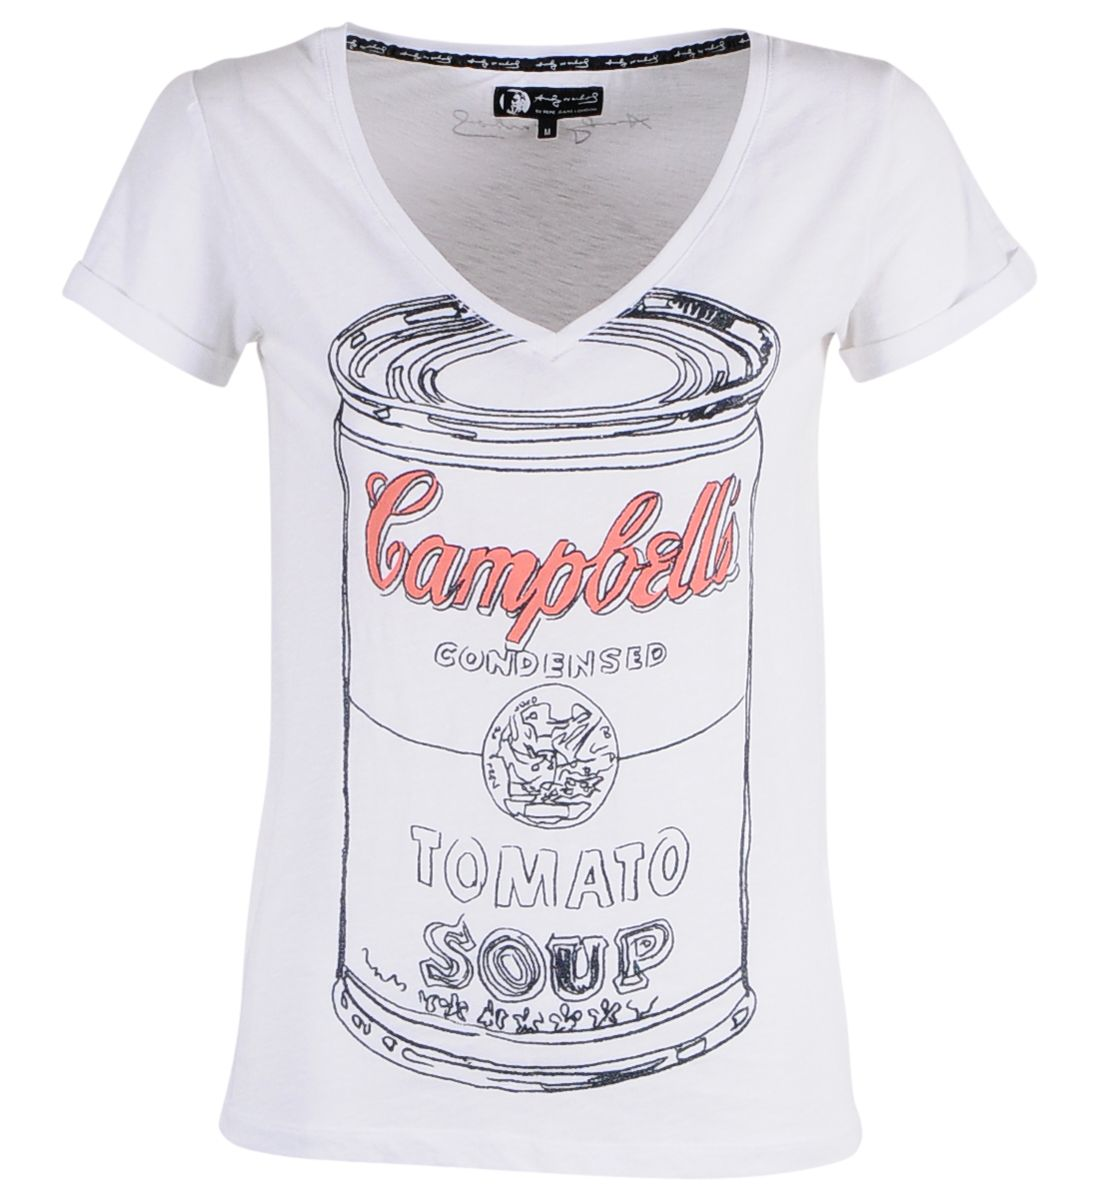 Campbell tee for a Campbell. Andy Warhol by Pepe Jeans